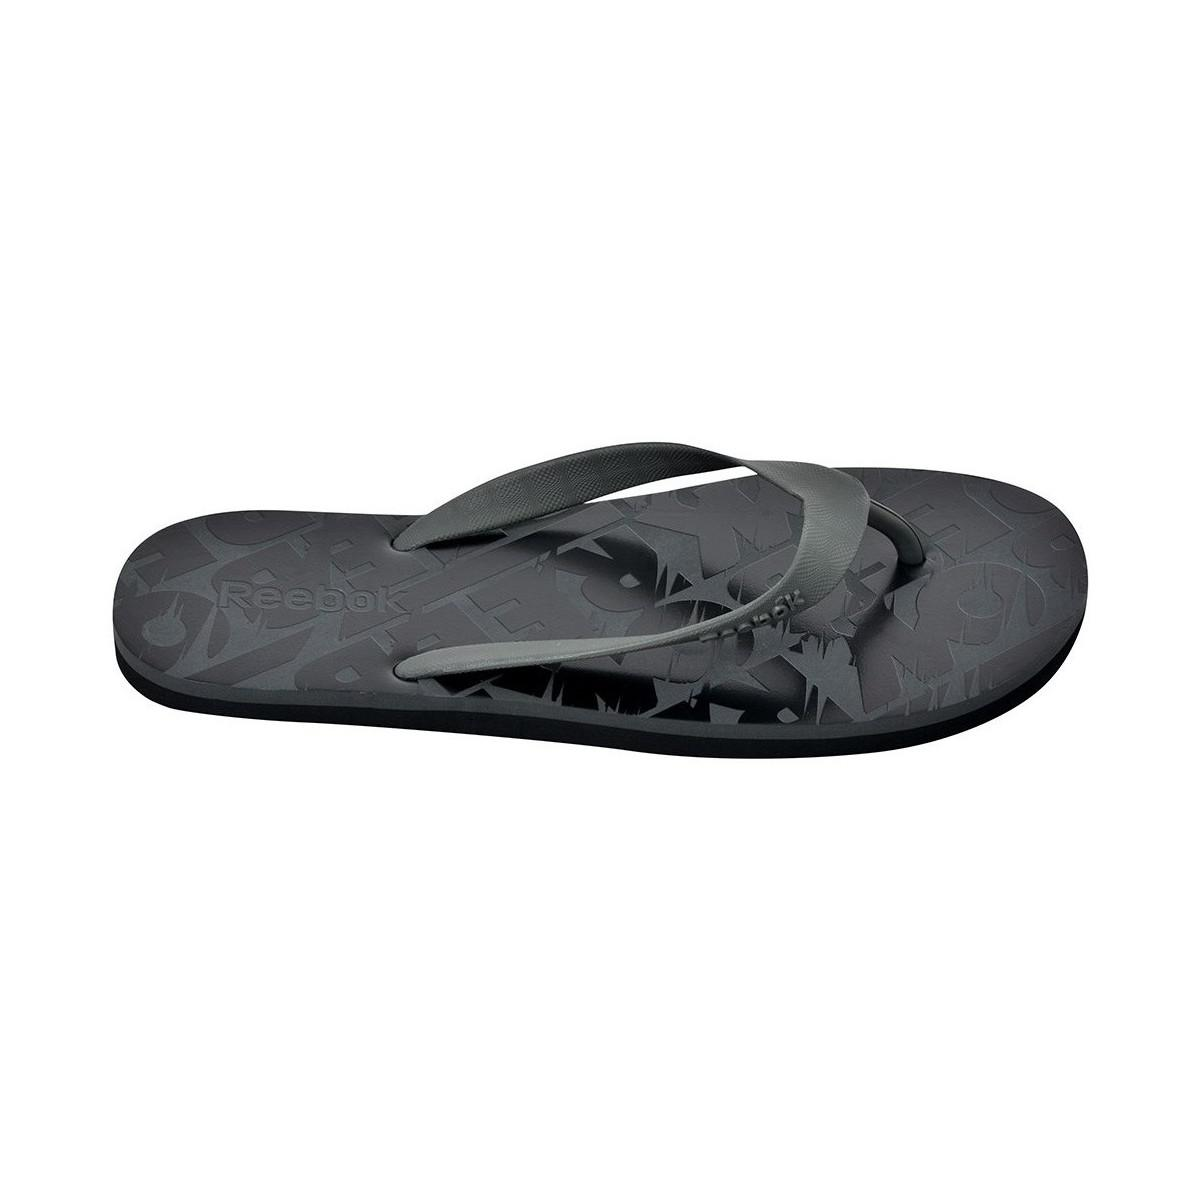 4a1273bcfe7a3a Reebok Transition Flip Men s Flip Flops   Sandals (shoes) In Black ...